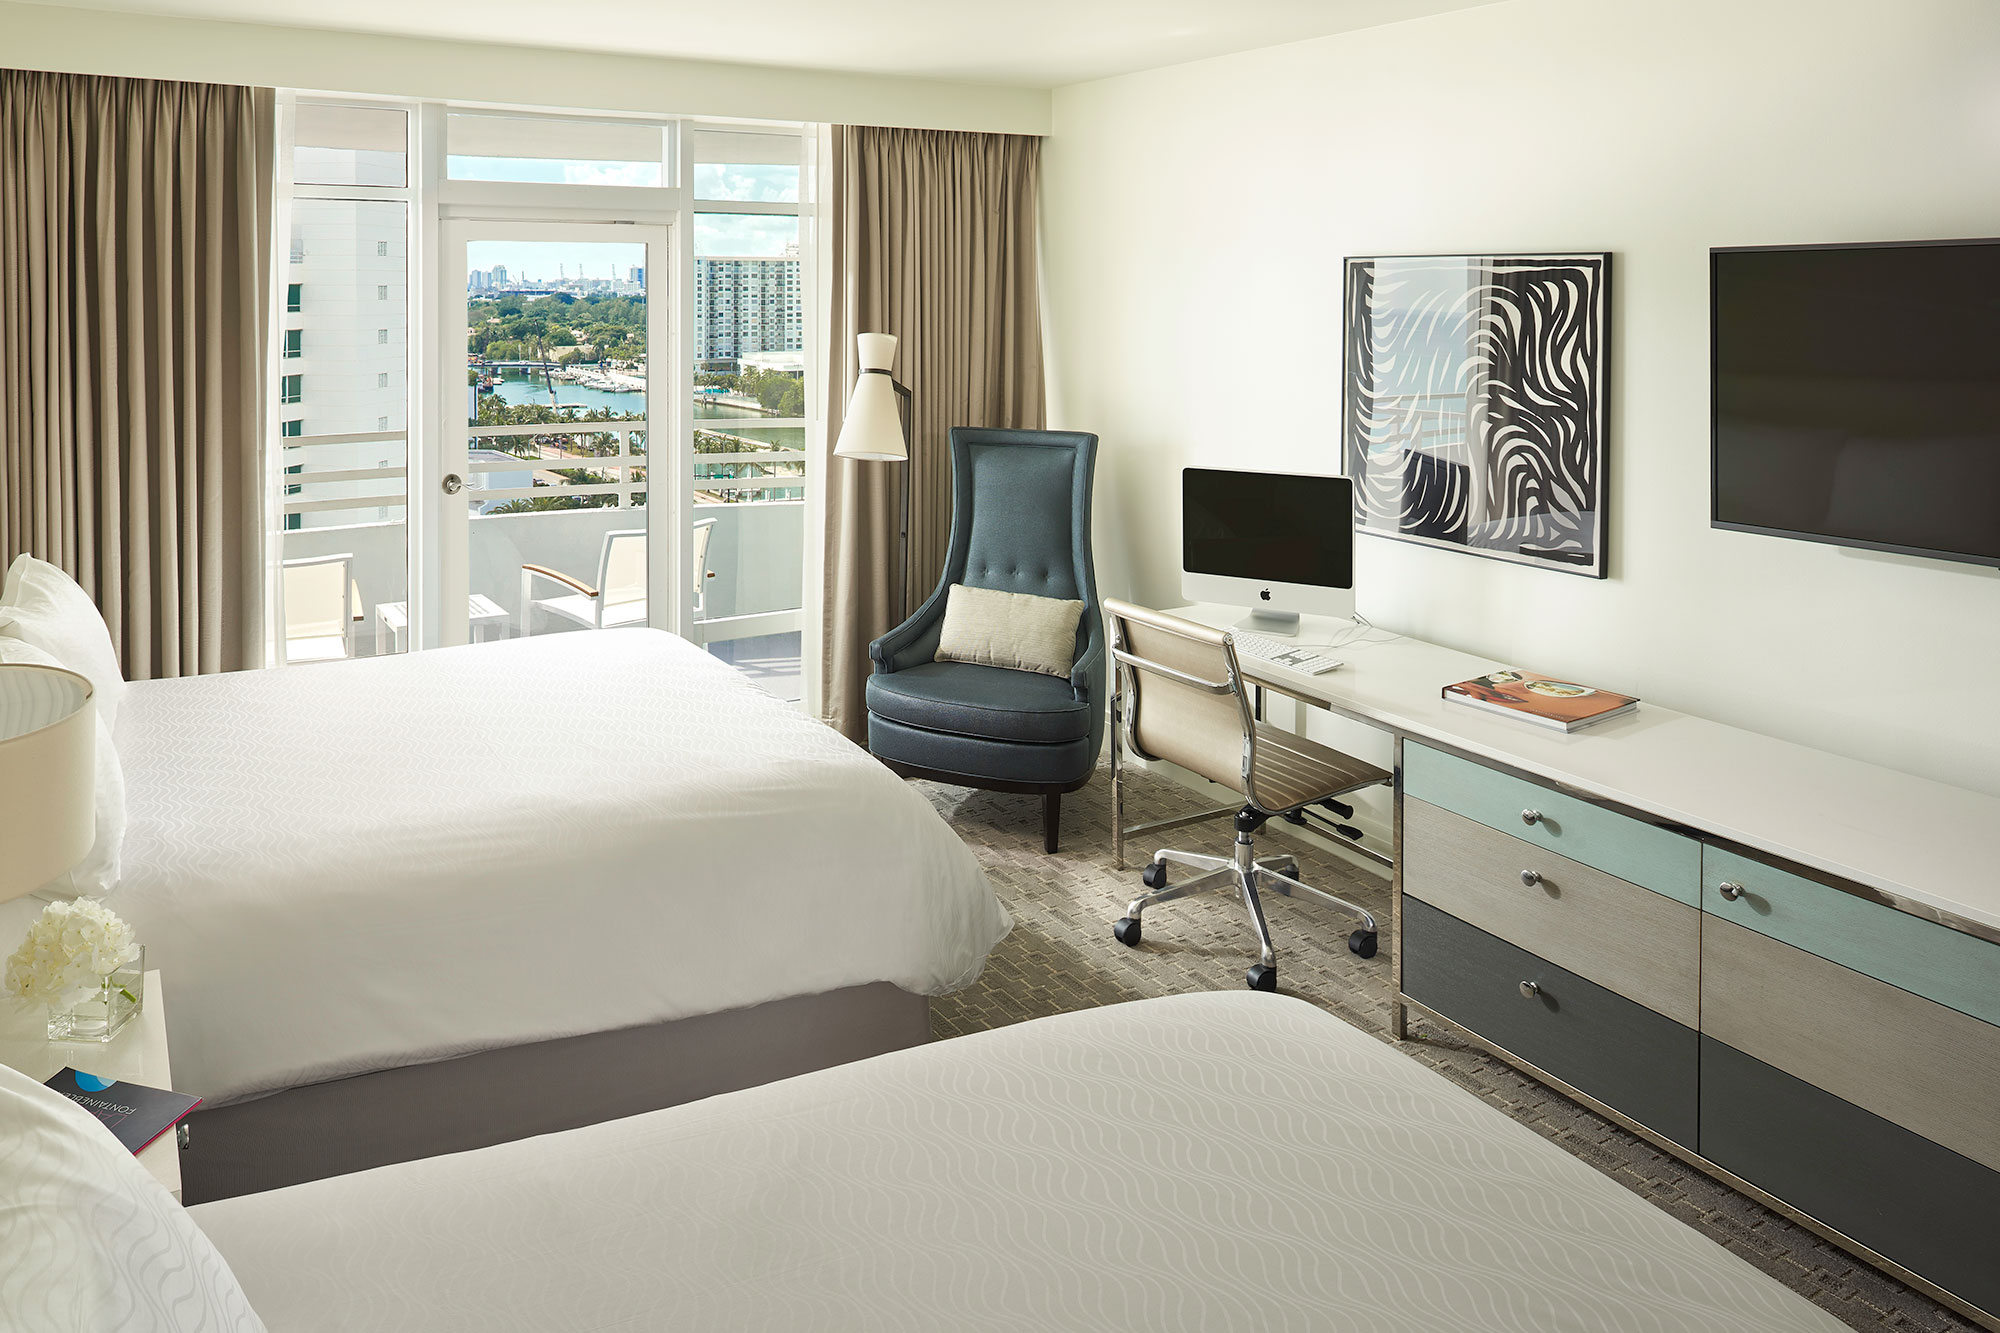 Deluxe Bay View Guestroom with Balcony 1